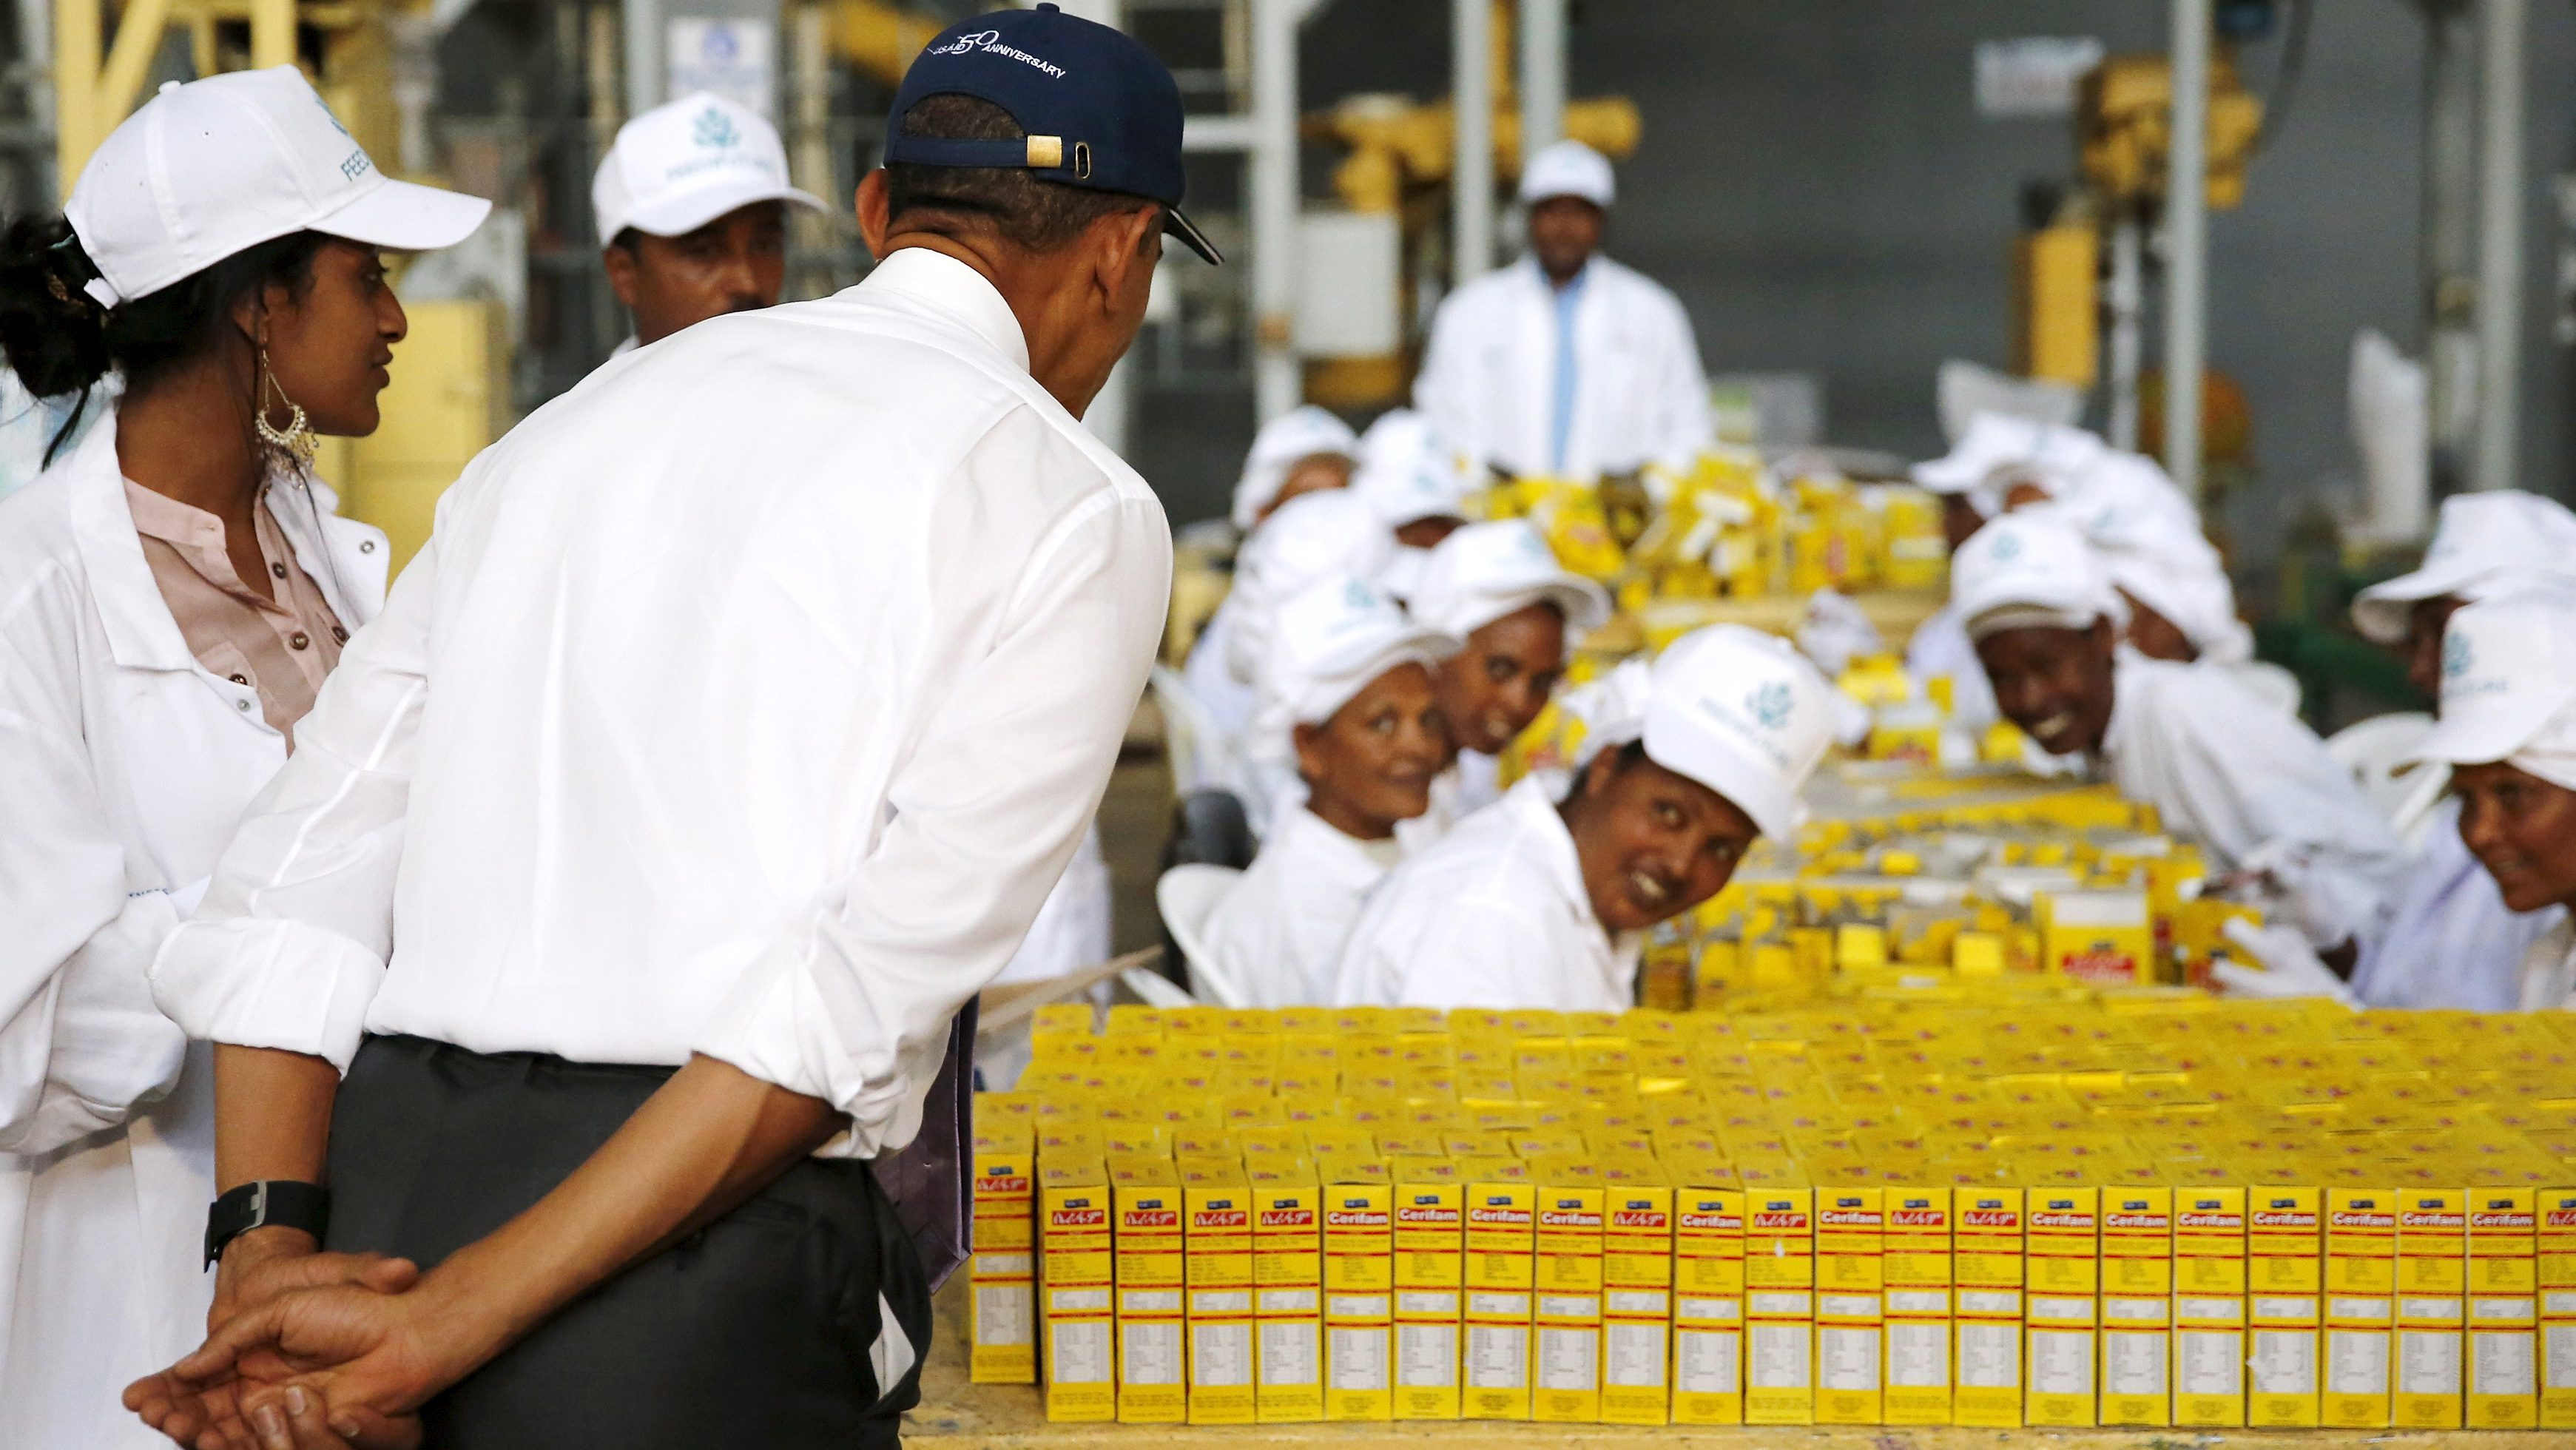 Obama bows as he greets workers during a tour of the Faffa Food factory in Addis Ababa, Ethiopia